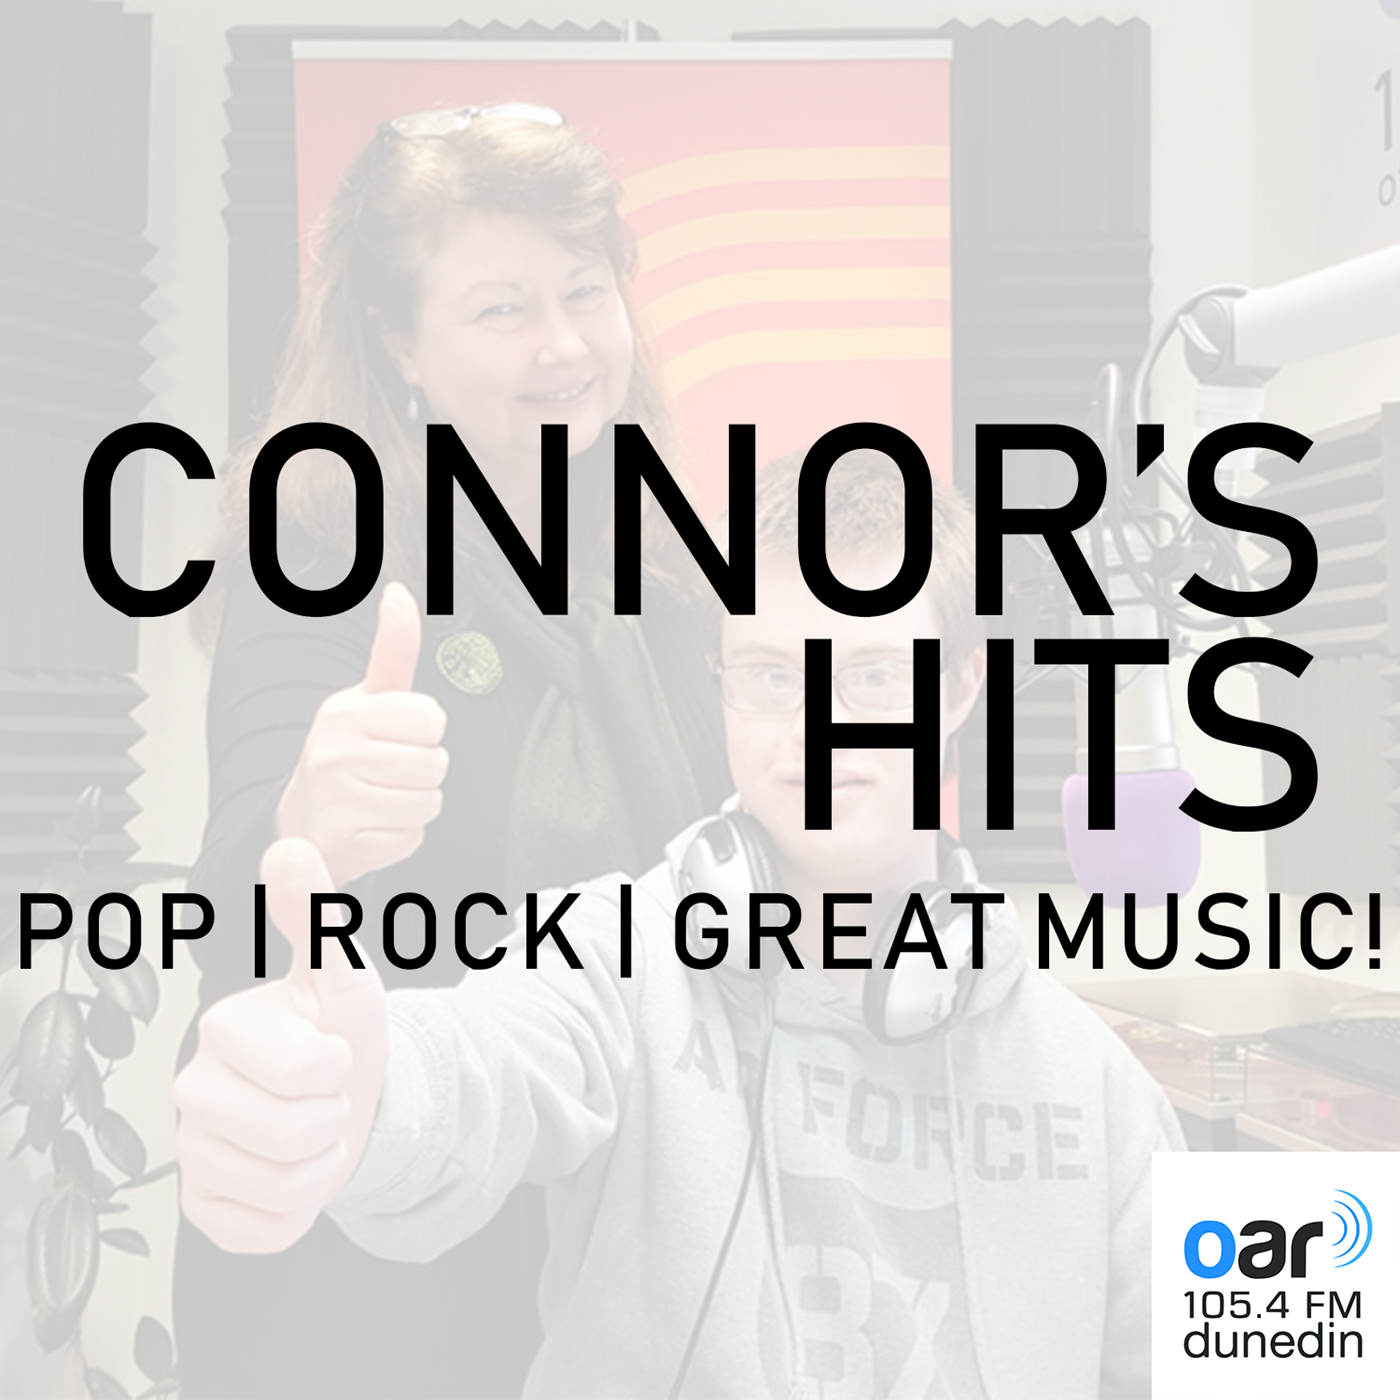 Connor's Hits - 15-02-2019